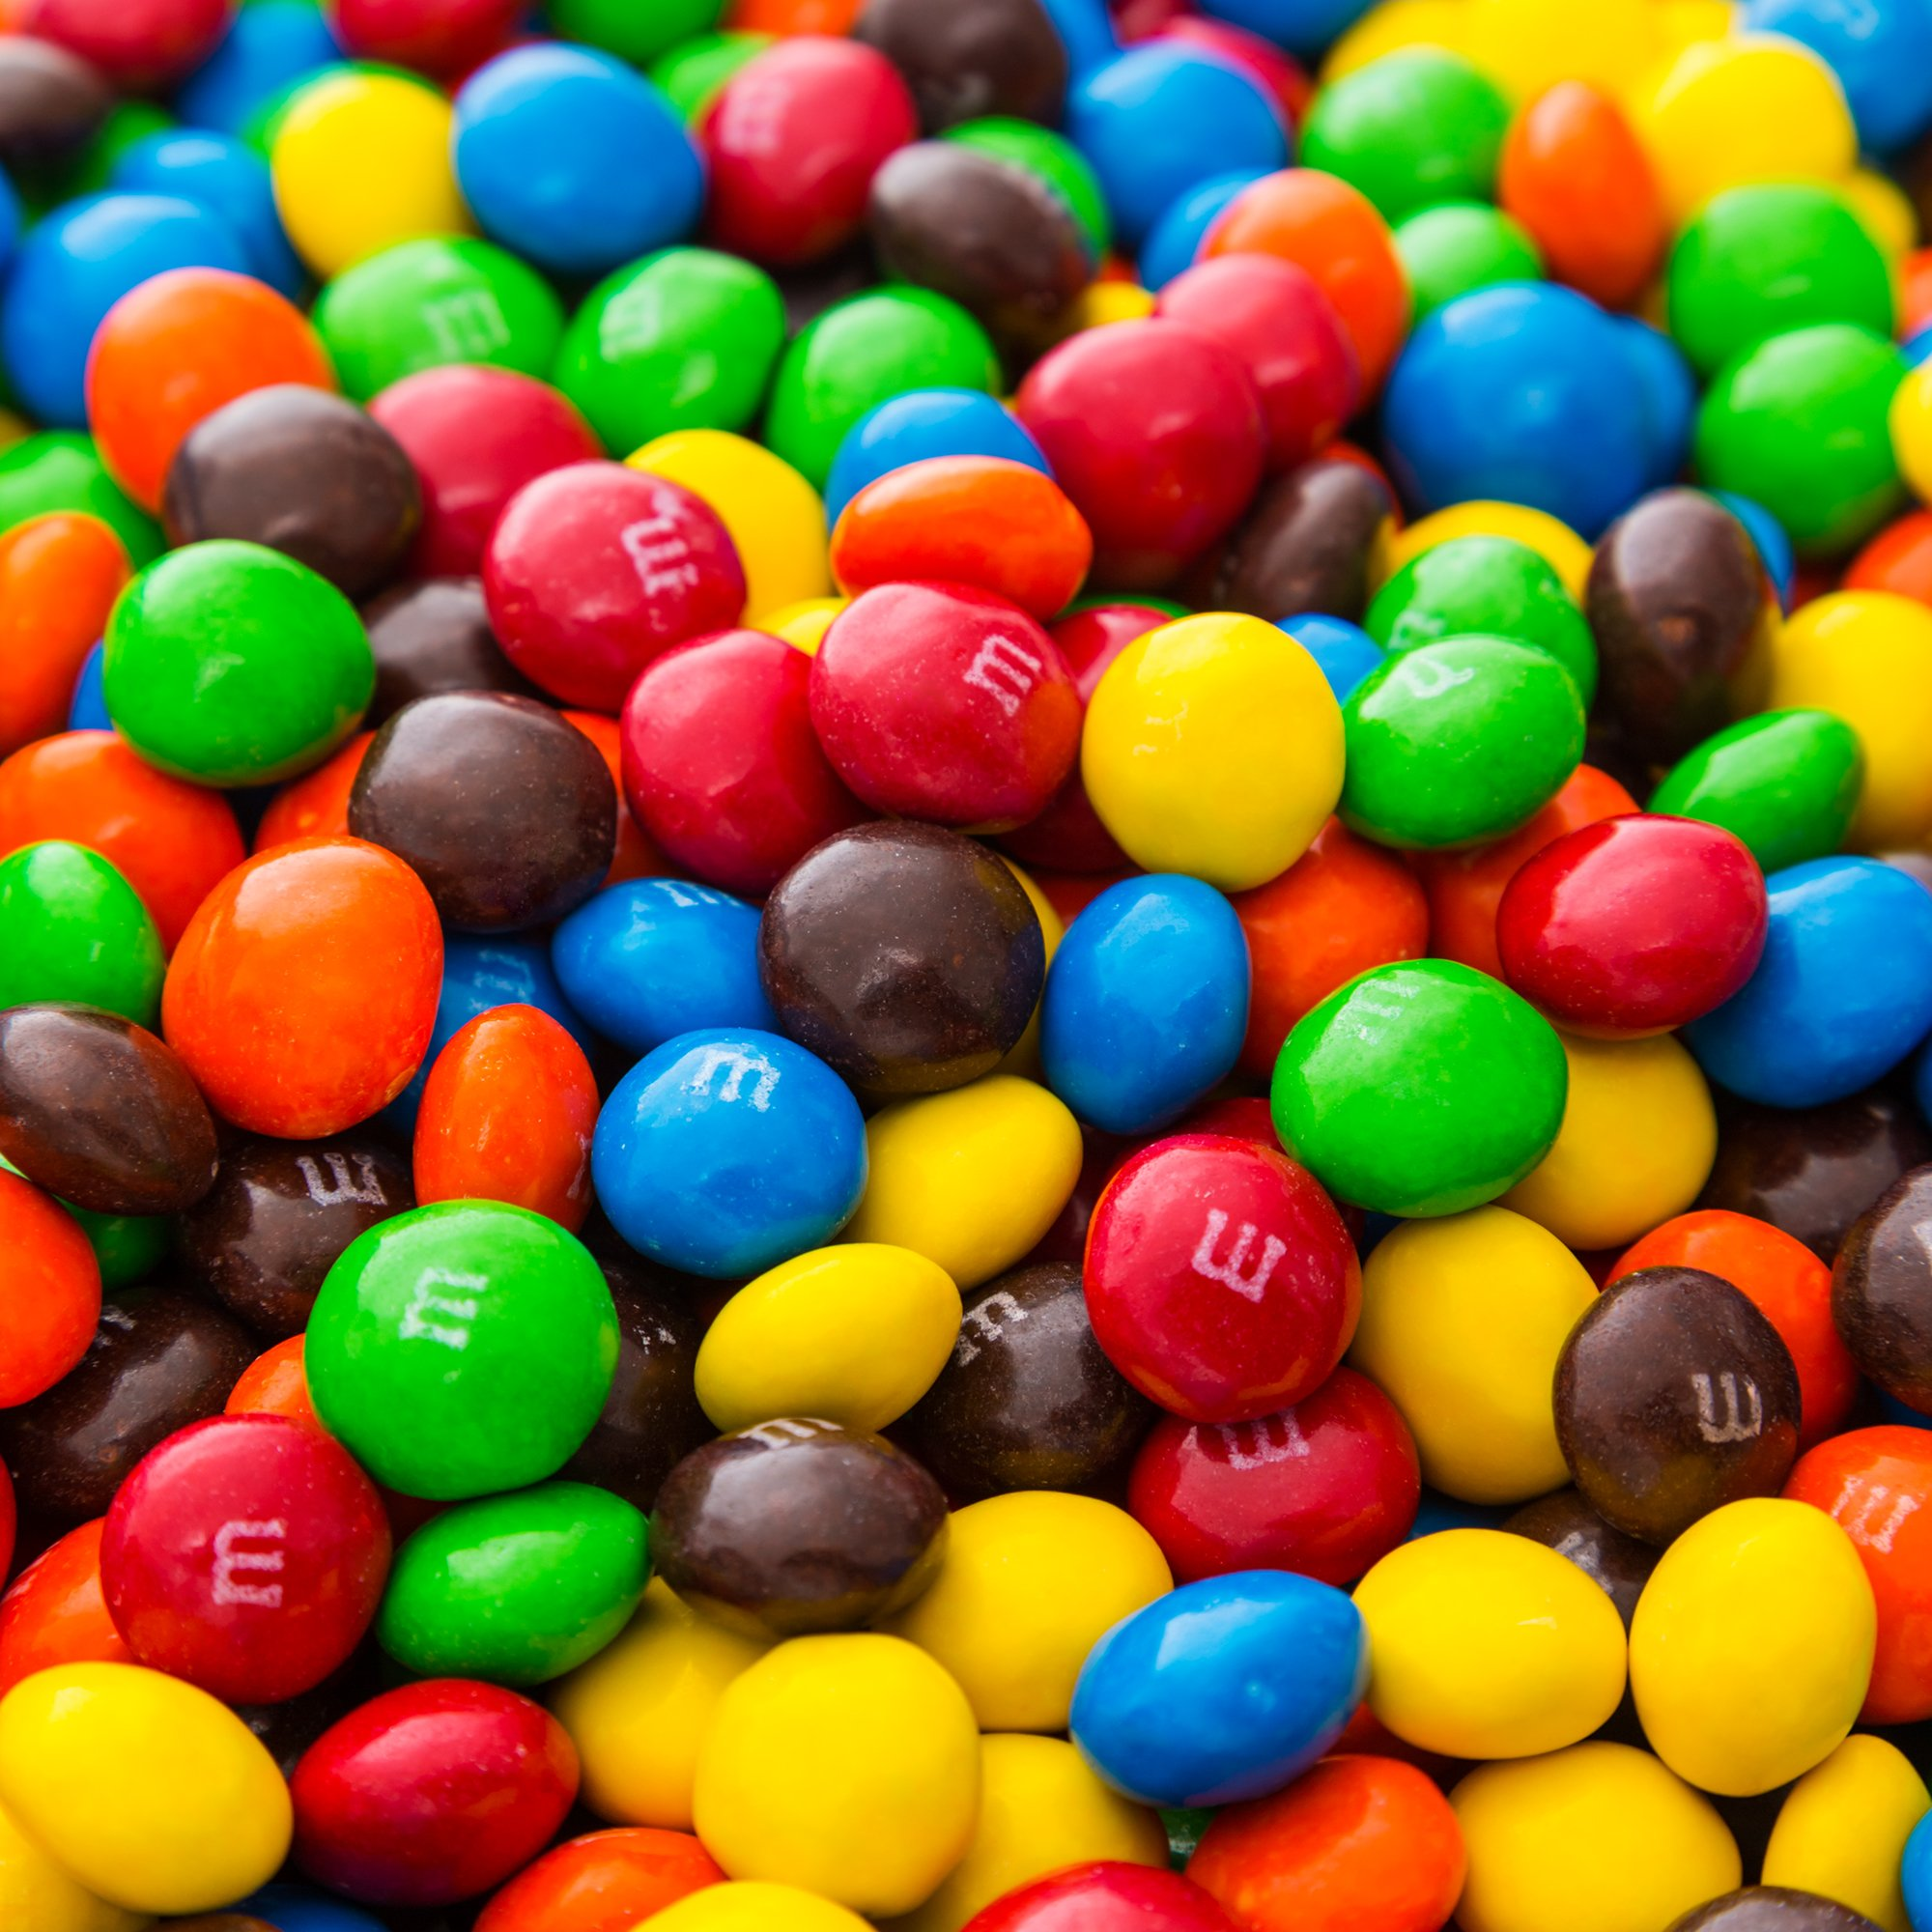 Bulk M&M's Plain Milk Chocolate in a Bomber® Bag - 5 lbs - Fresh, Tasty Treats - Resealable Bag by Fast Fresh Nuts (Image #3)